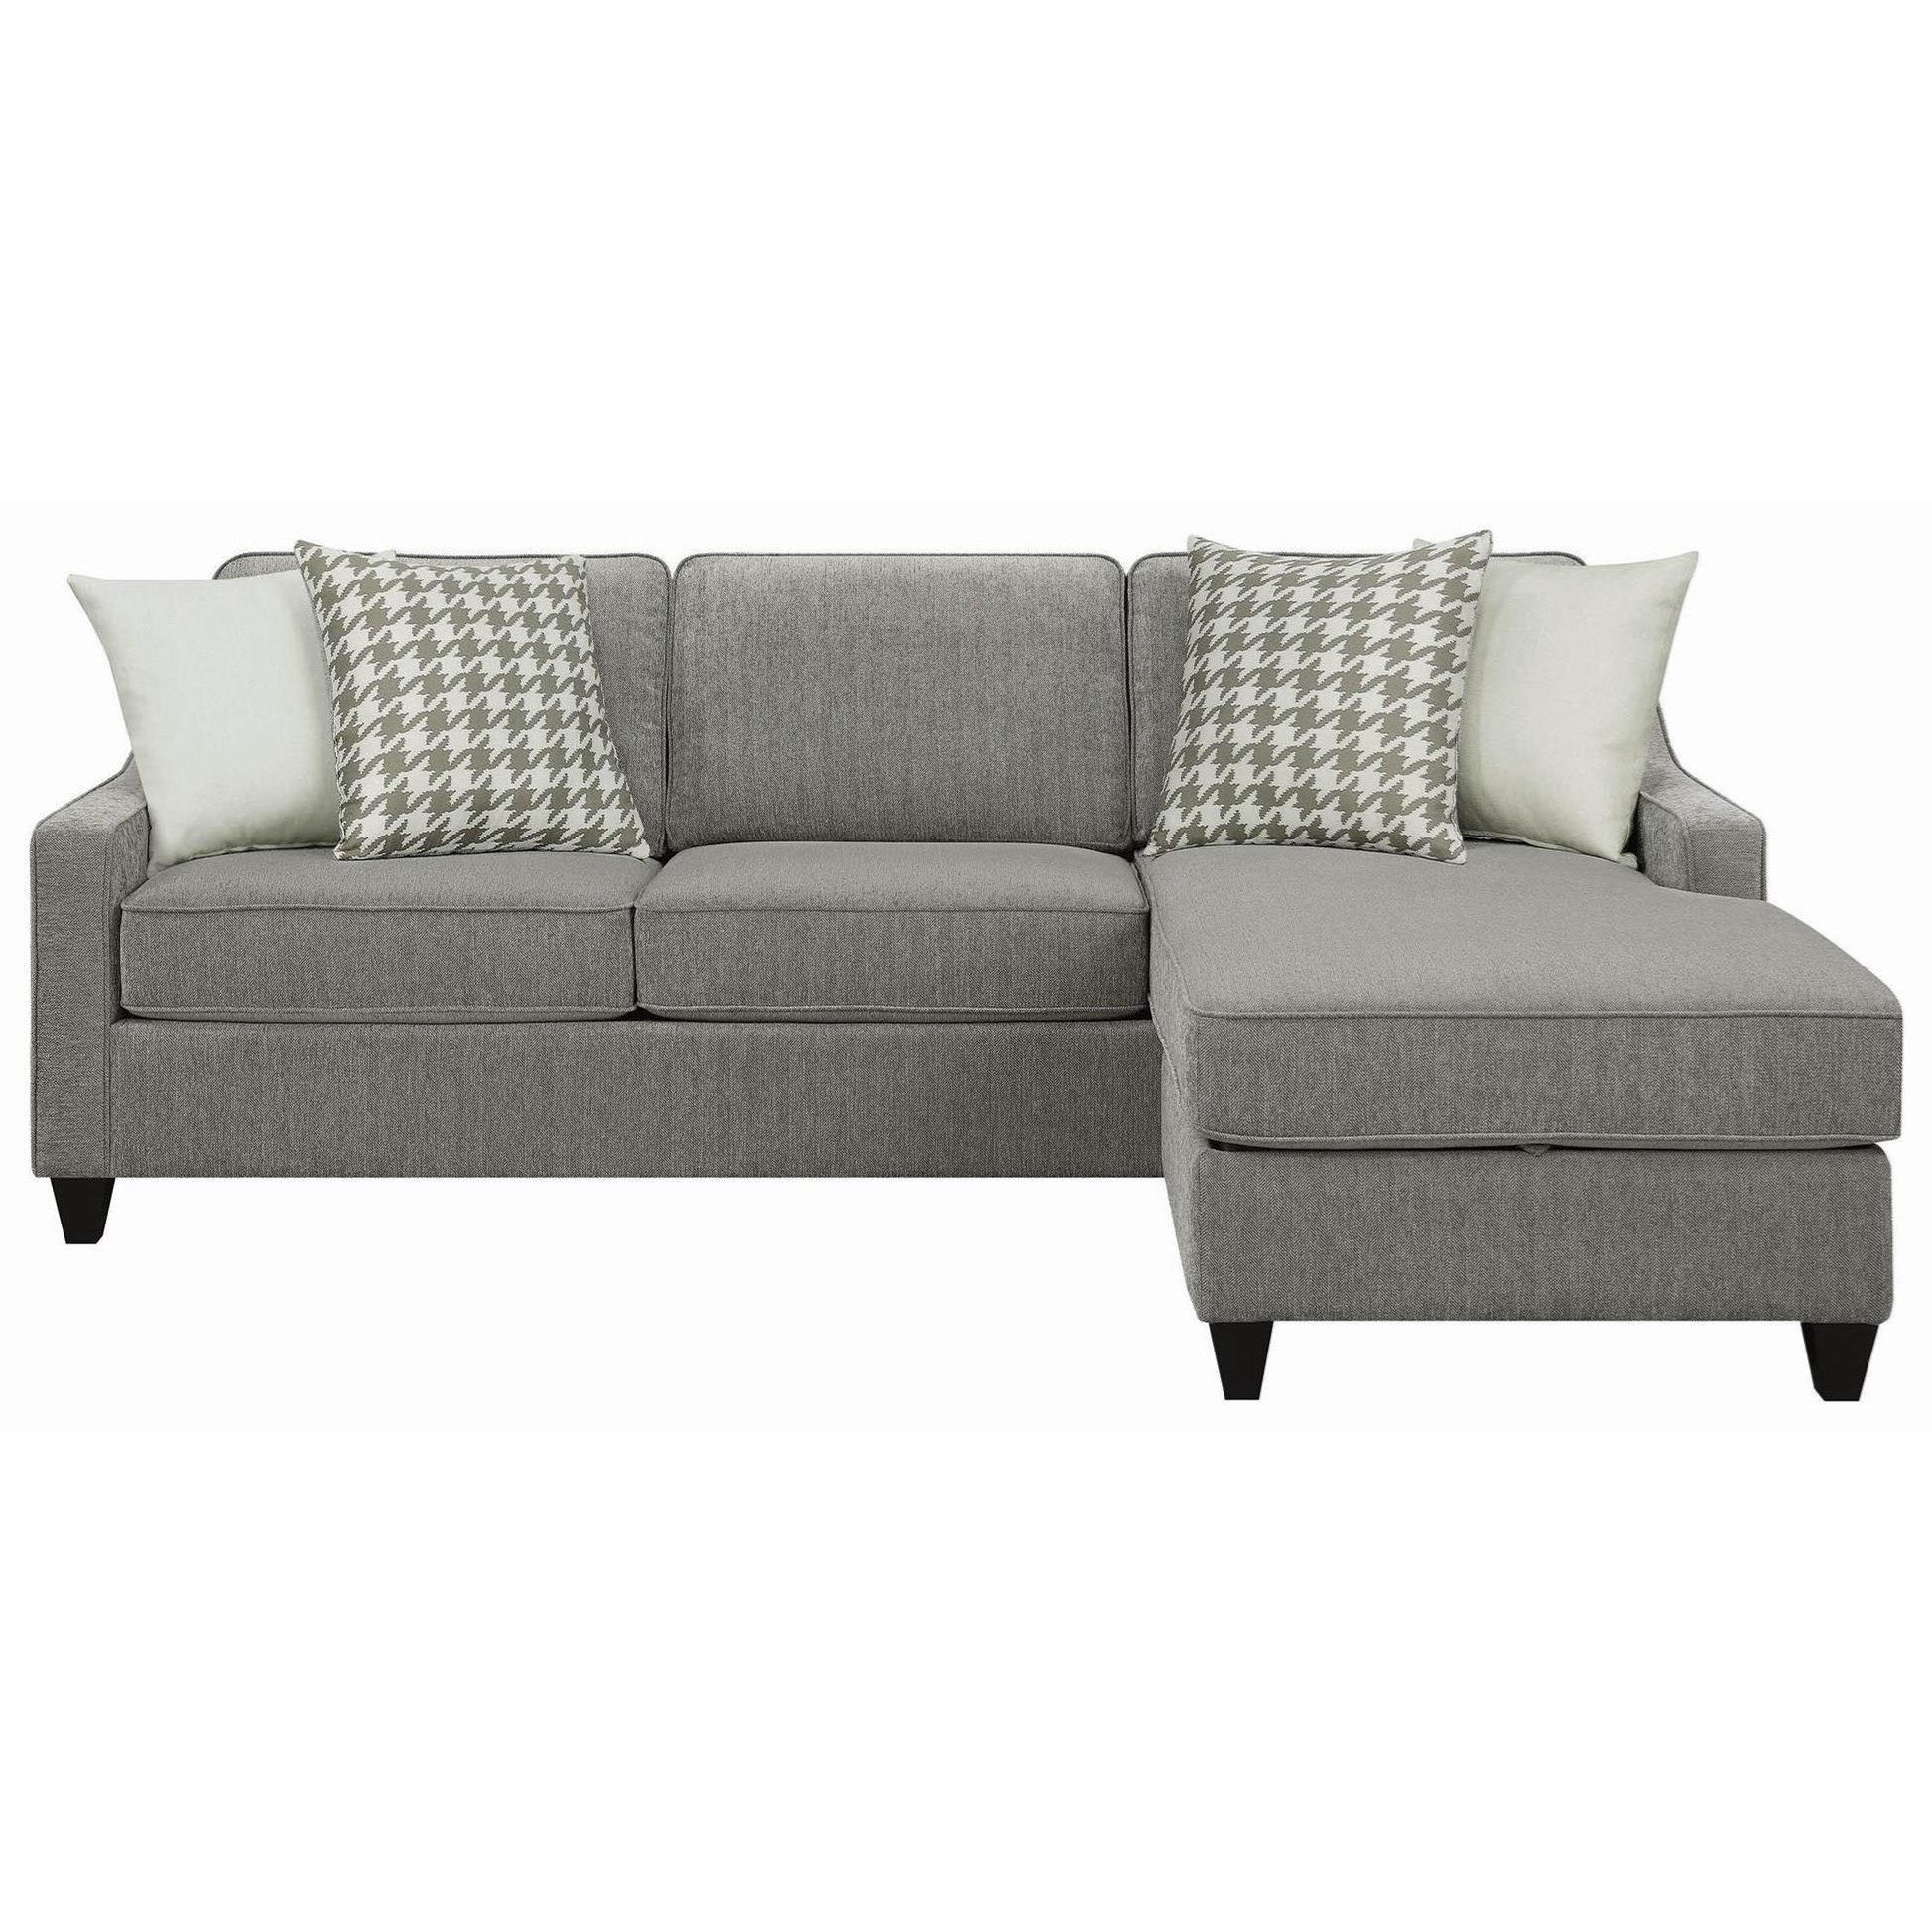 Sectional Sofa Couch Reversible Chaise Ottoman Furniture: Scott Living Montgomery 501697 Modern Sectional Sofa With